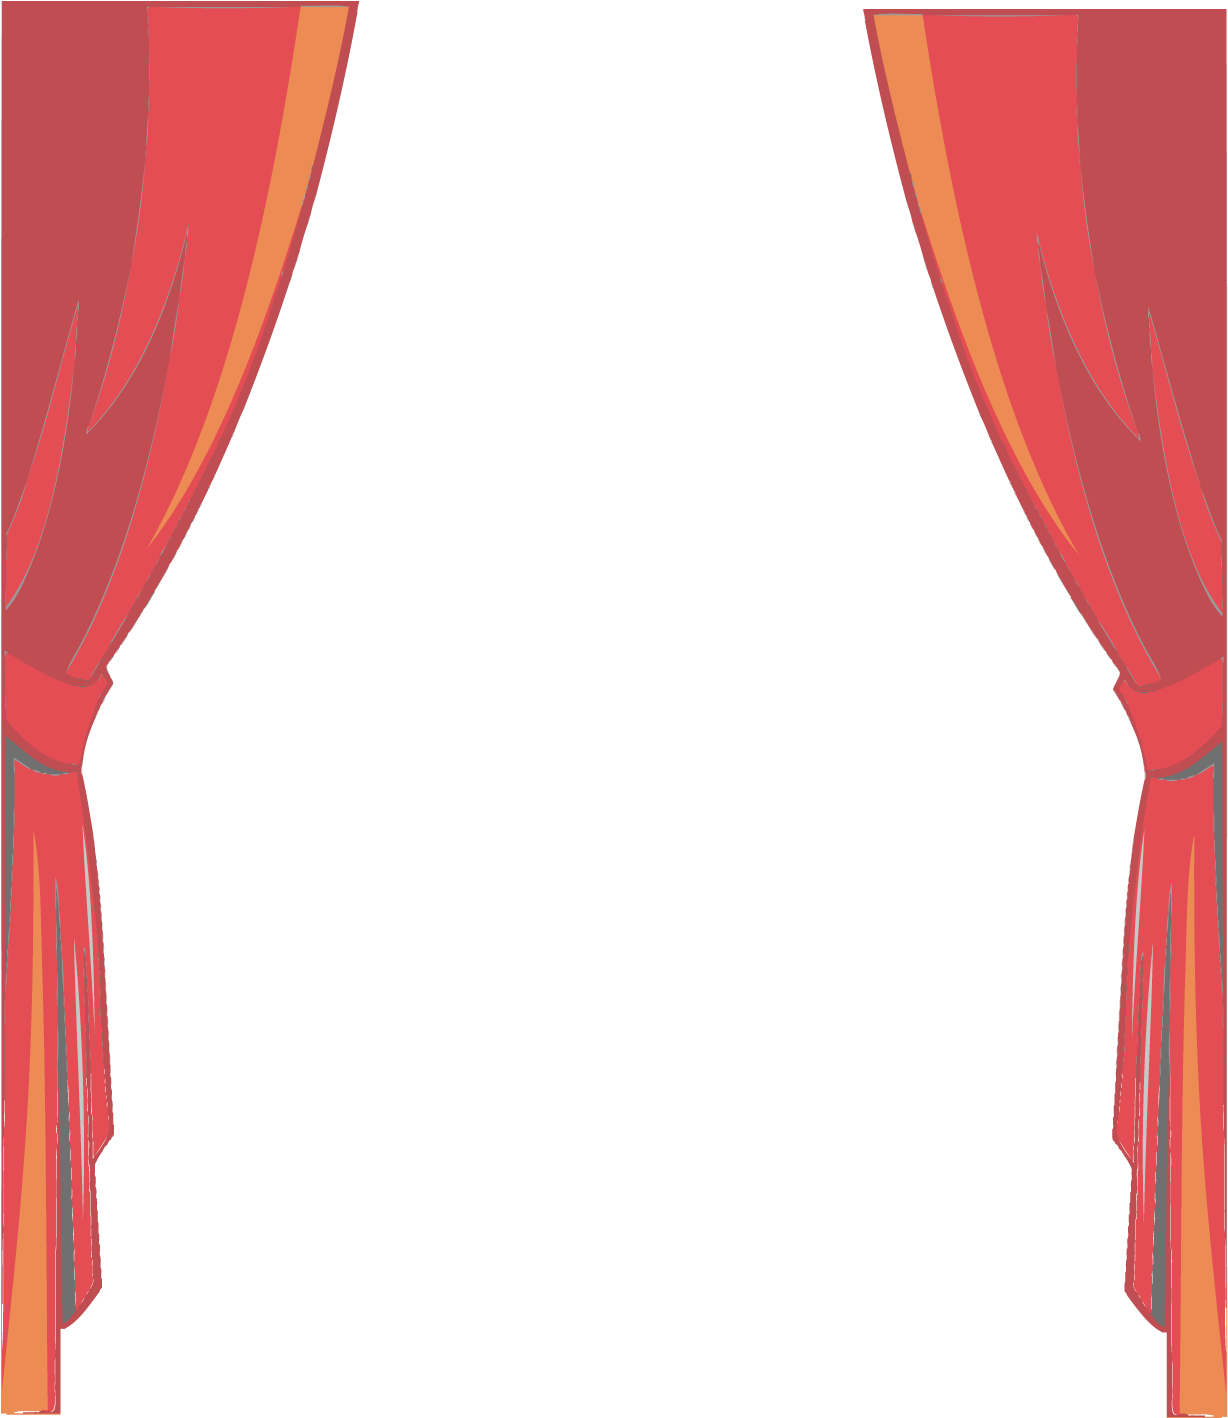 Stage Transparent Cartoon Graphic Black And White.